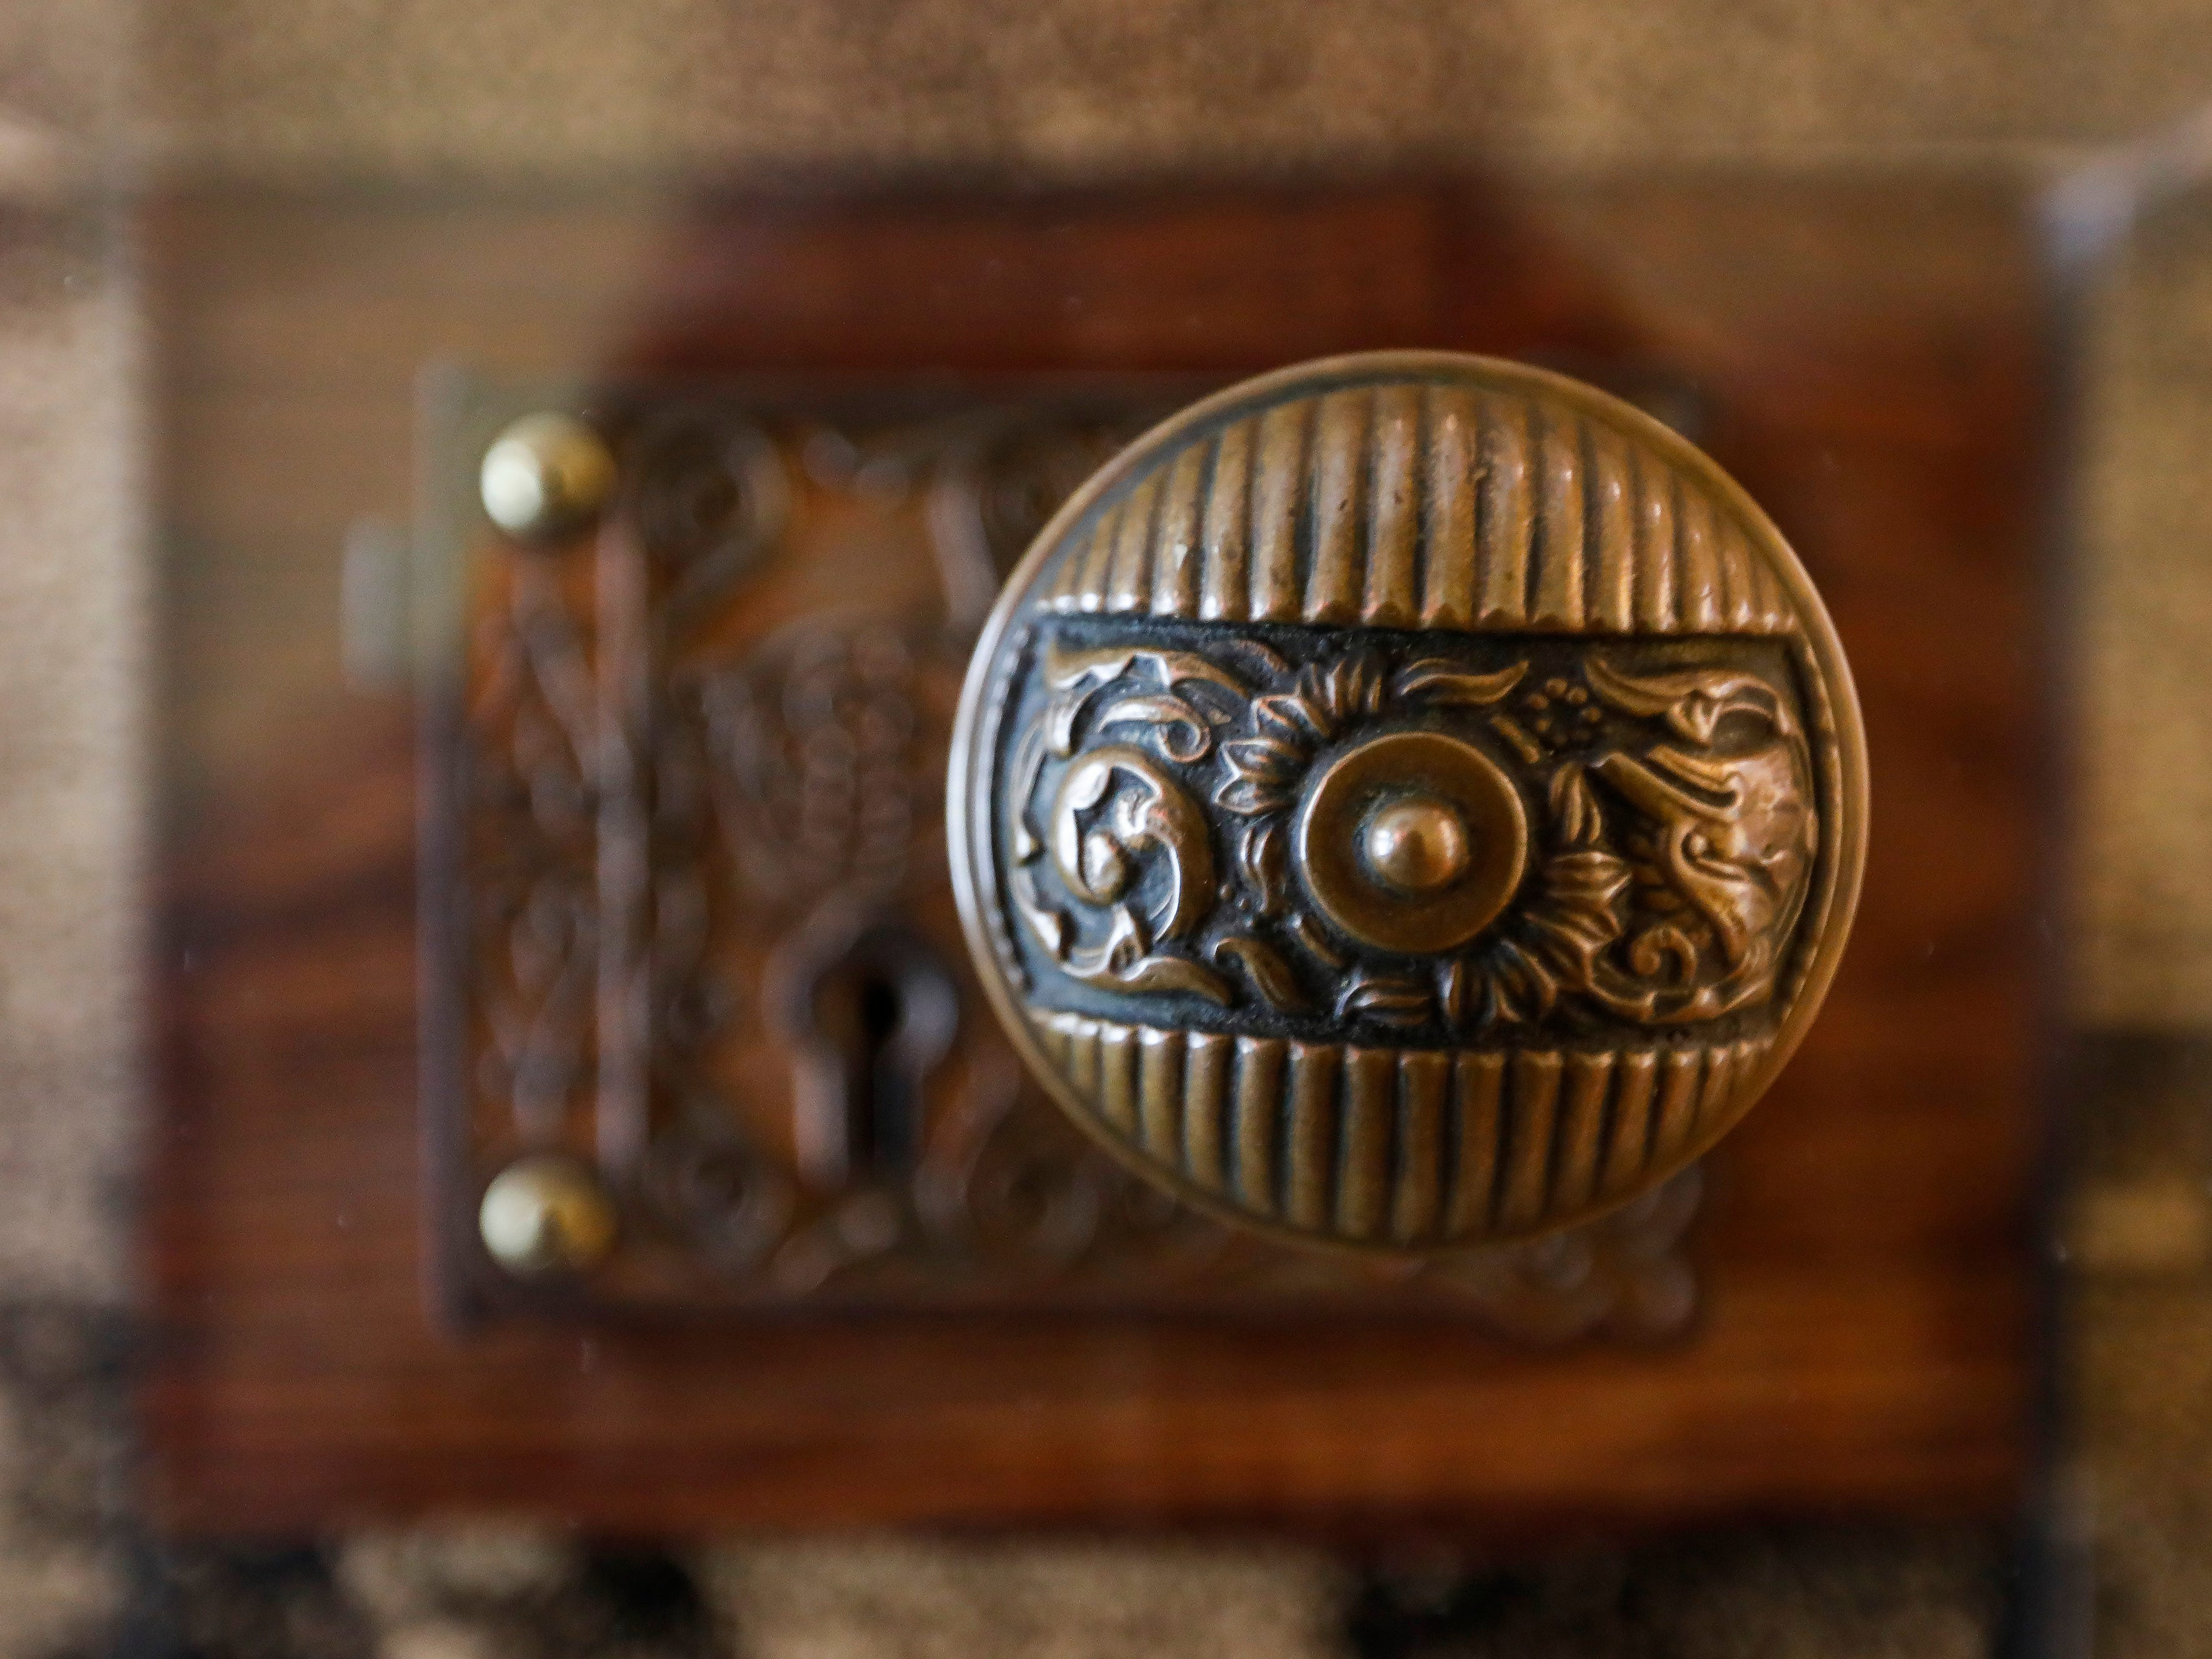 The original door handle from the old courthouse on the square is one of the many historical items on display at the History Museum on the Square's expanded location.